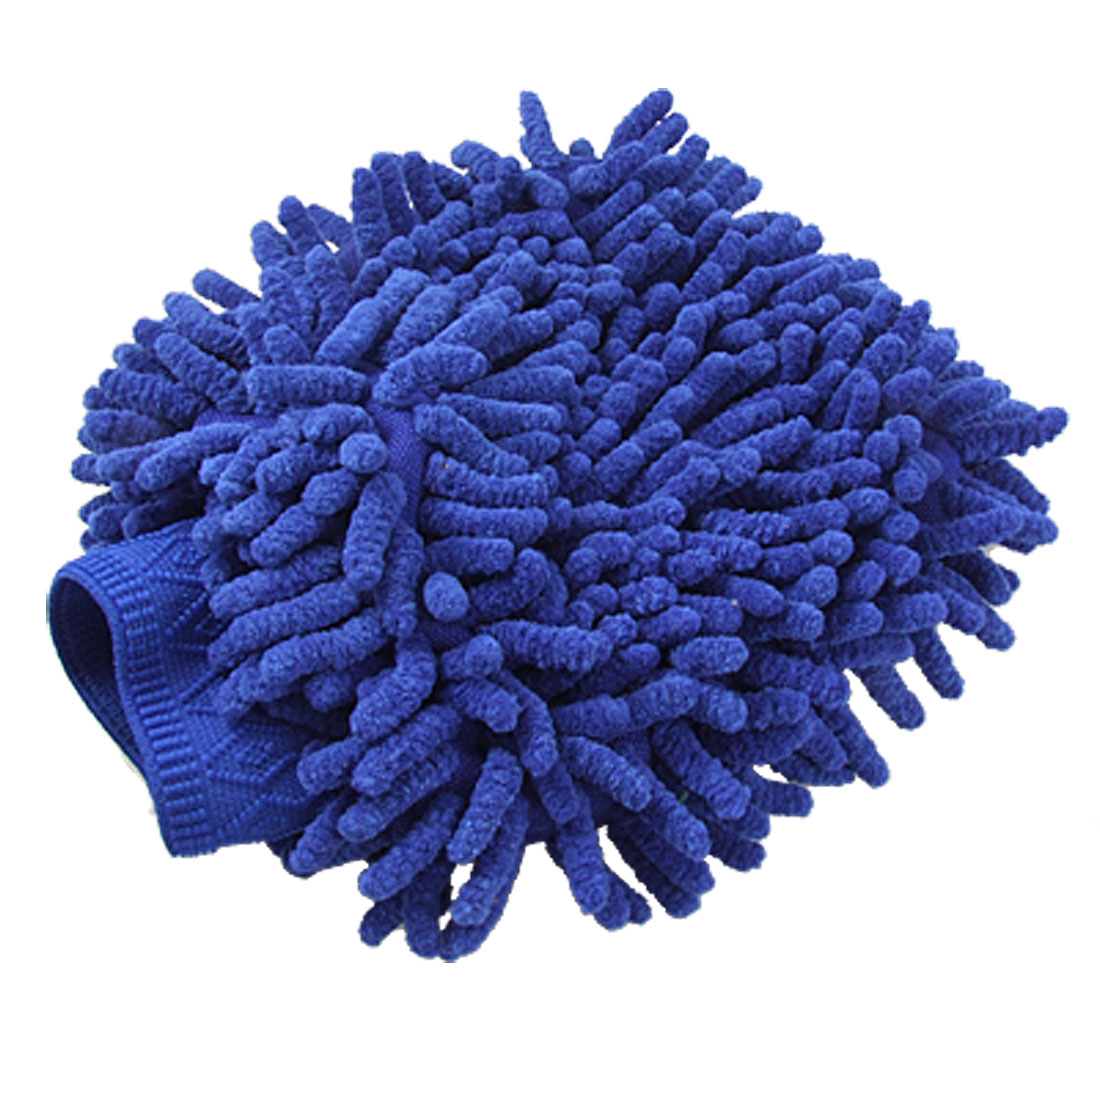 Auto Car Washing Blue Glove Microfiber Wash Mitt